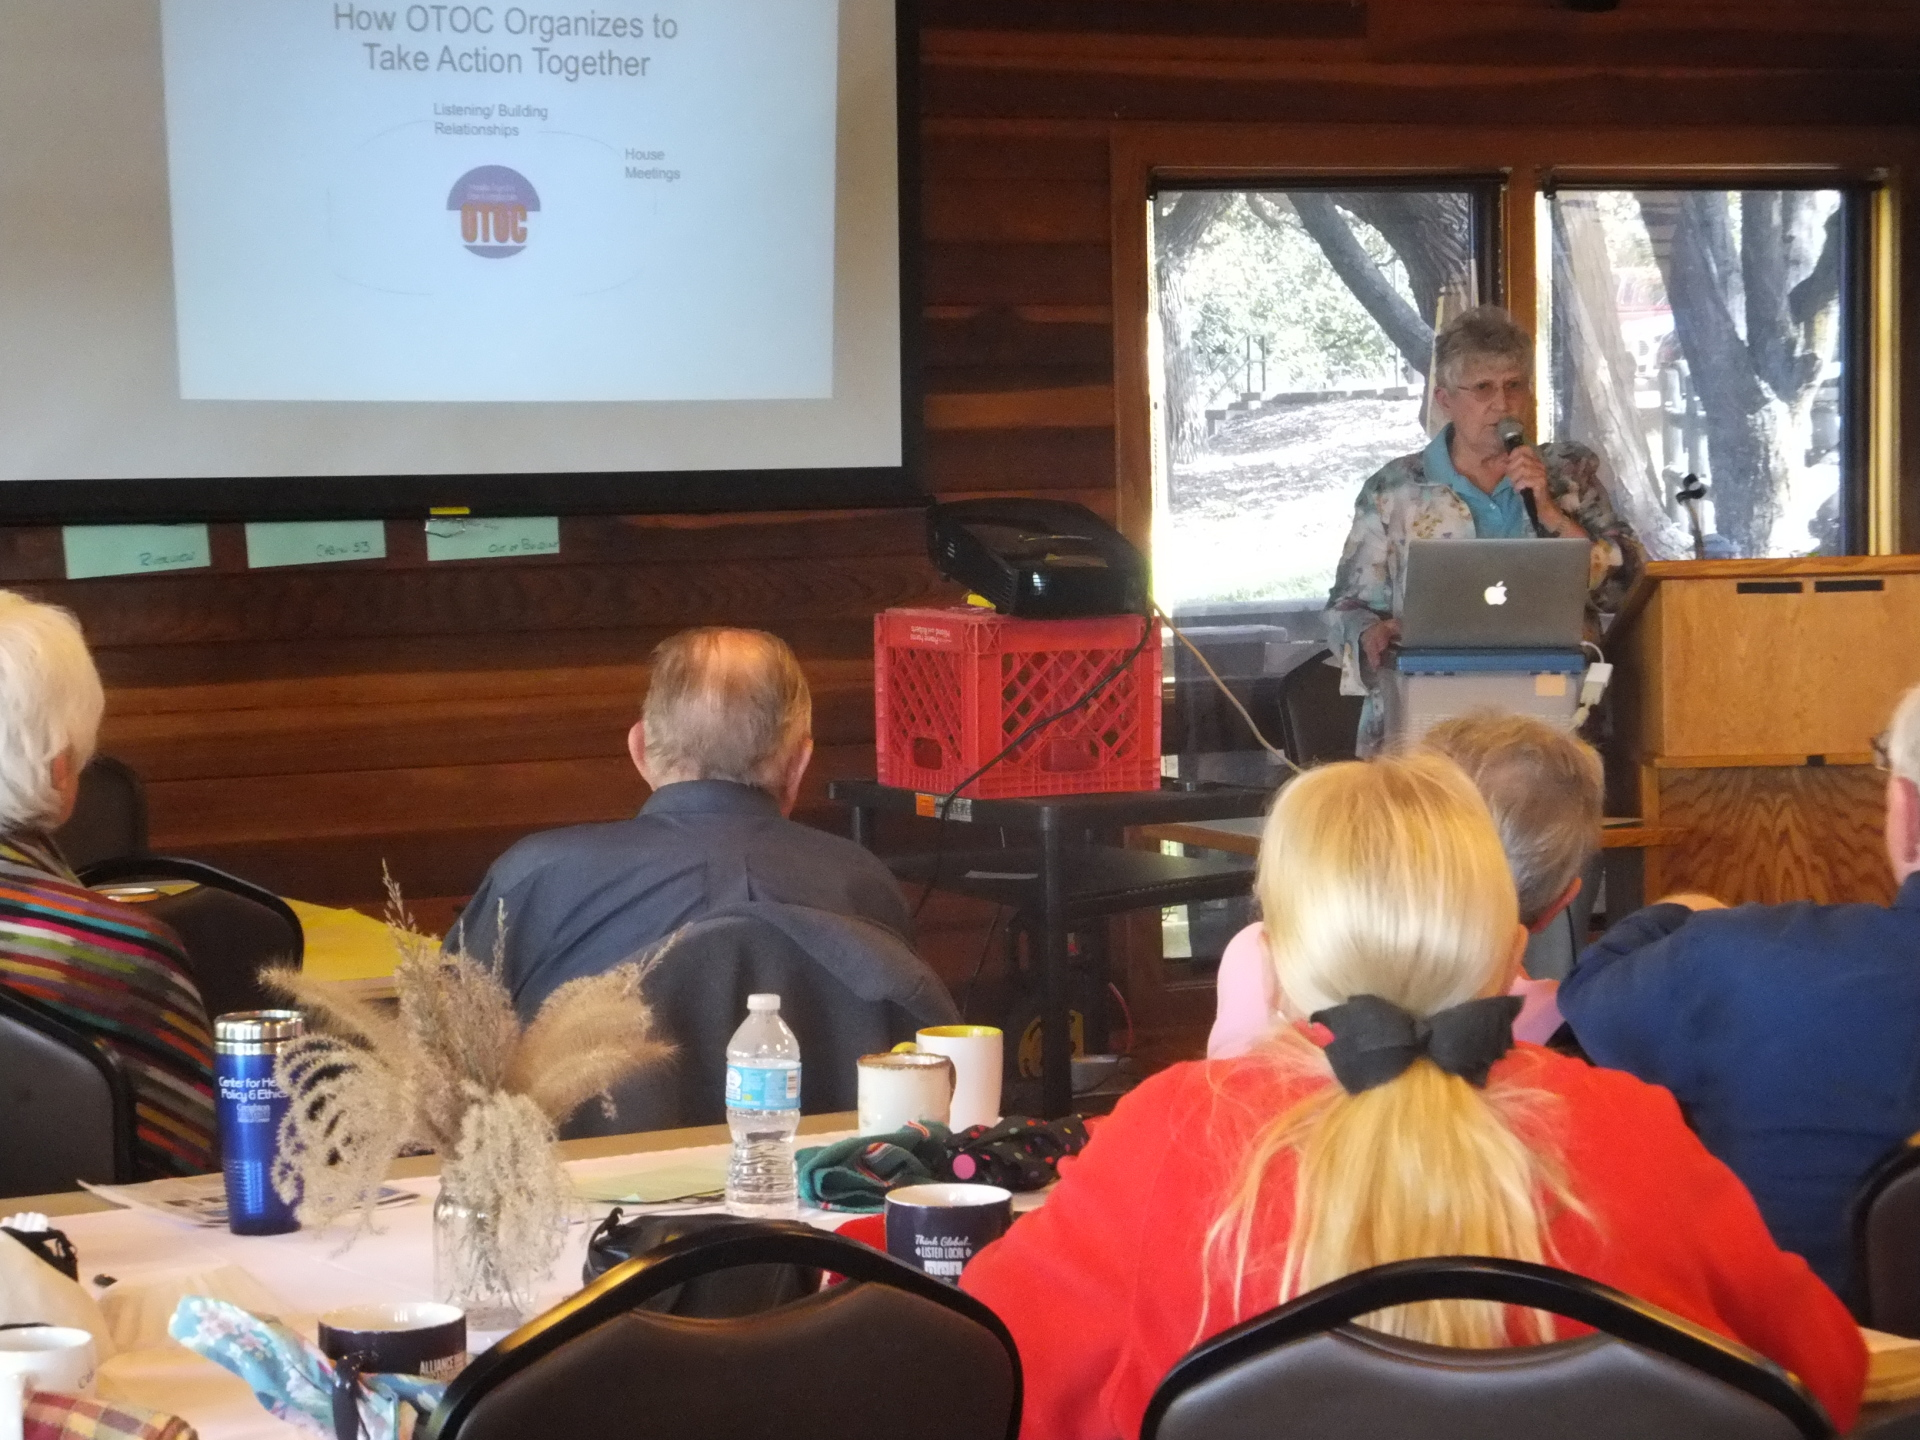 Faith-based Community Organizing with Mary Ruth Stegman of the Omaha Together One Community Environmental Task Force